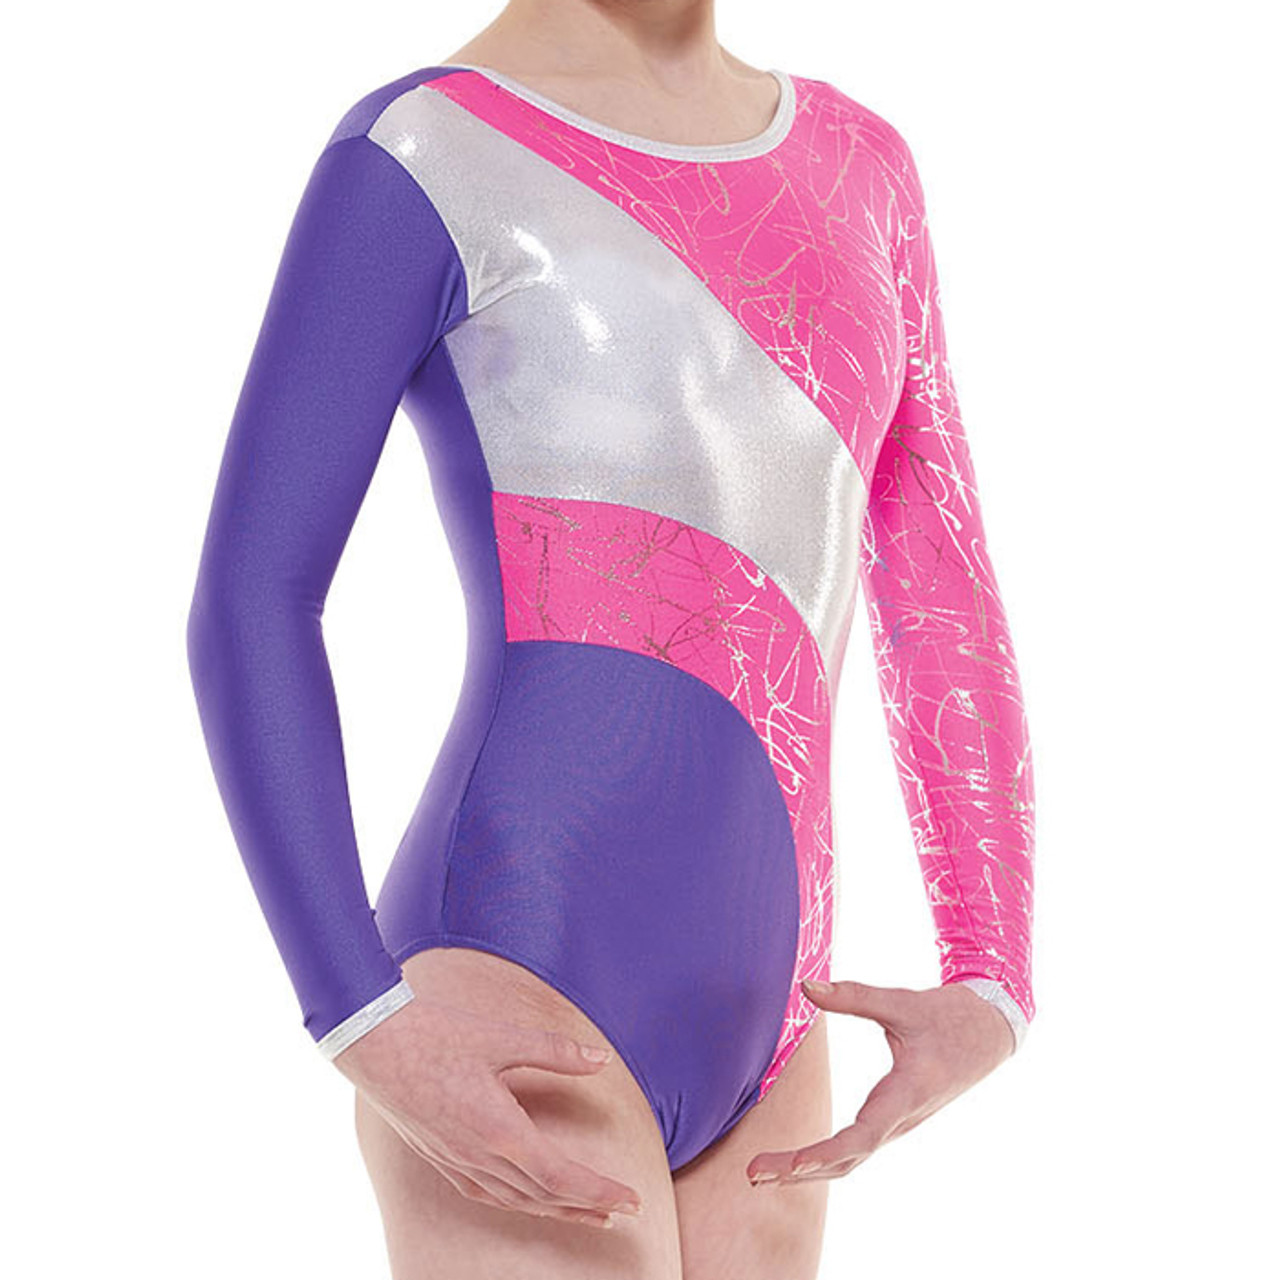 391889fd90cb TAPPERS   POINTERS GYM 38 CARNIVAL LEOTARD - 4 dance